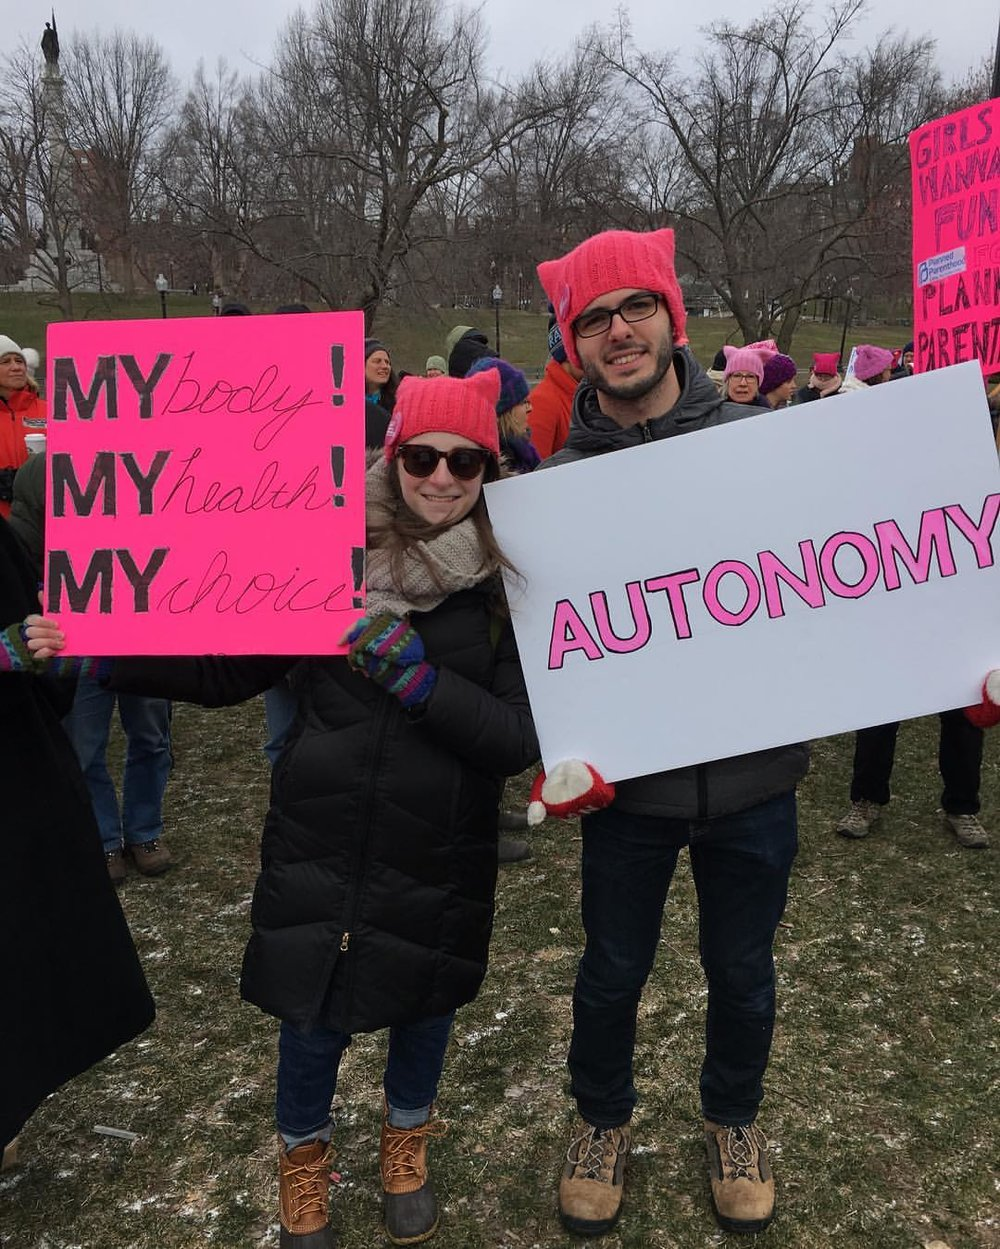 The author and her partner at a Planned Parenthood rally in Boston.